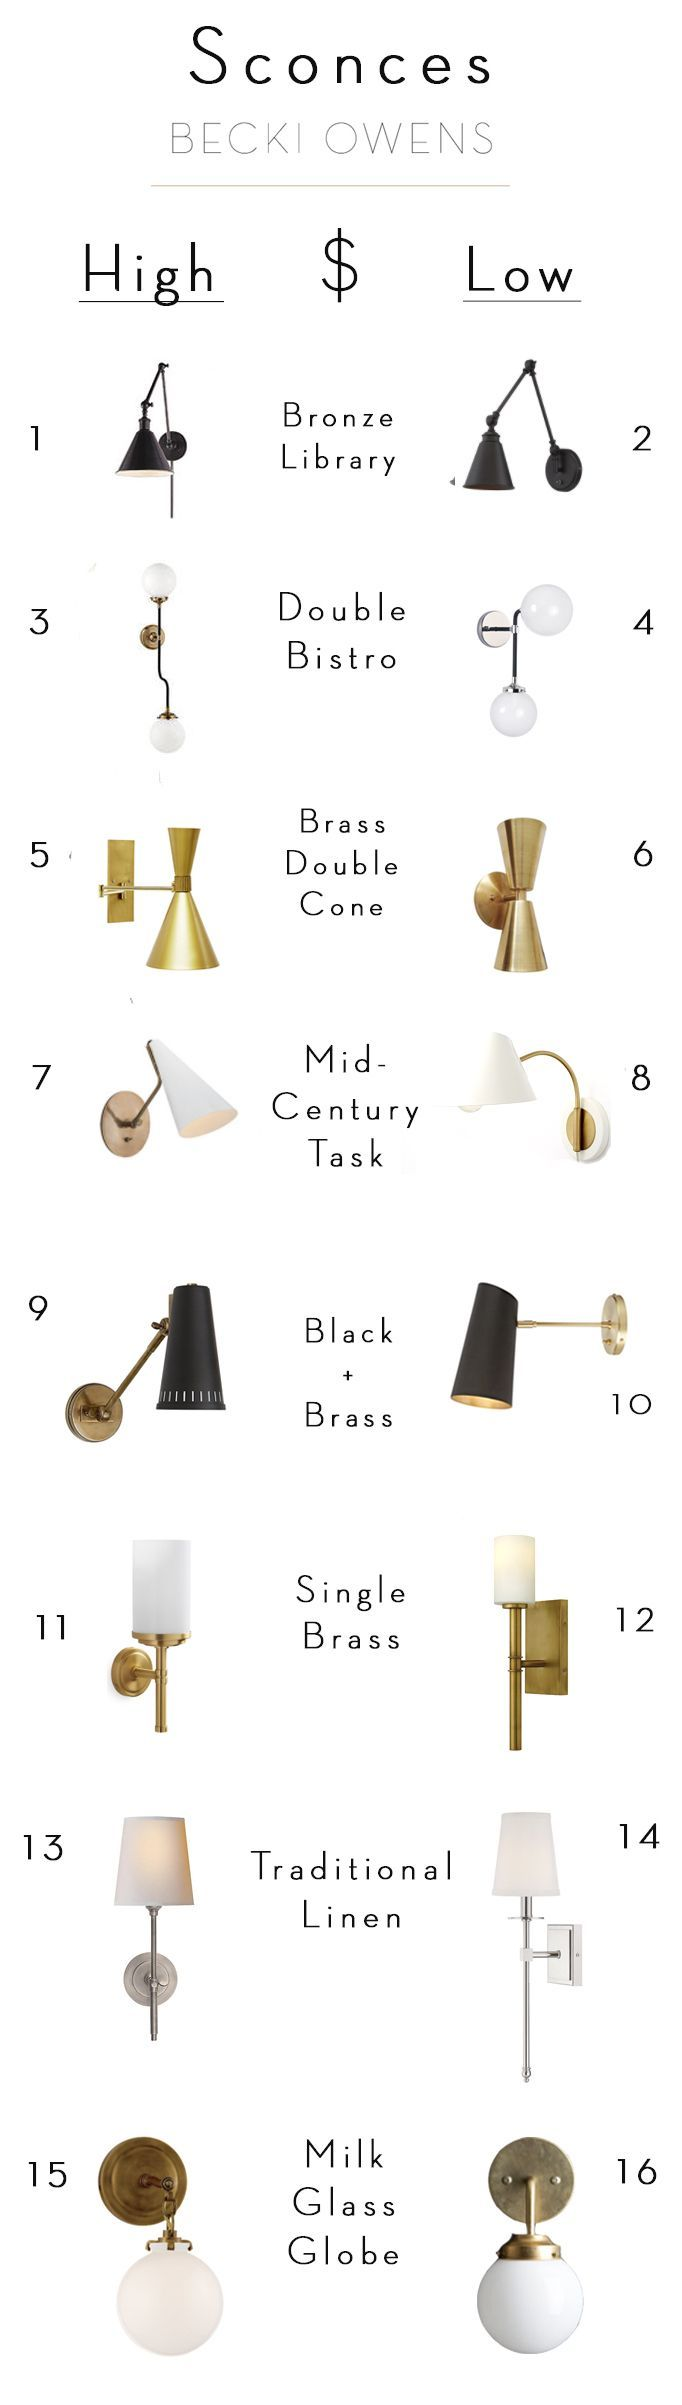 Wall sconces add dimension to your space. Check out today's splurge and save sconce roundup for beautiful sconces no matter your budget.